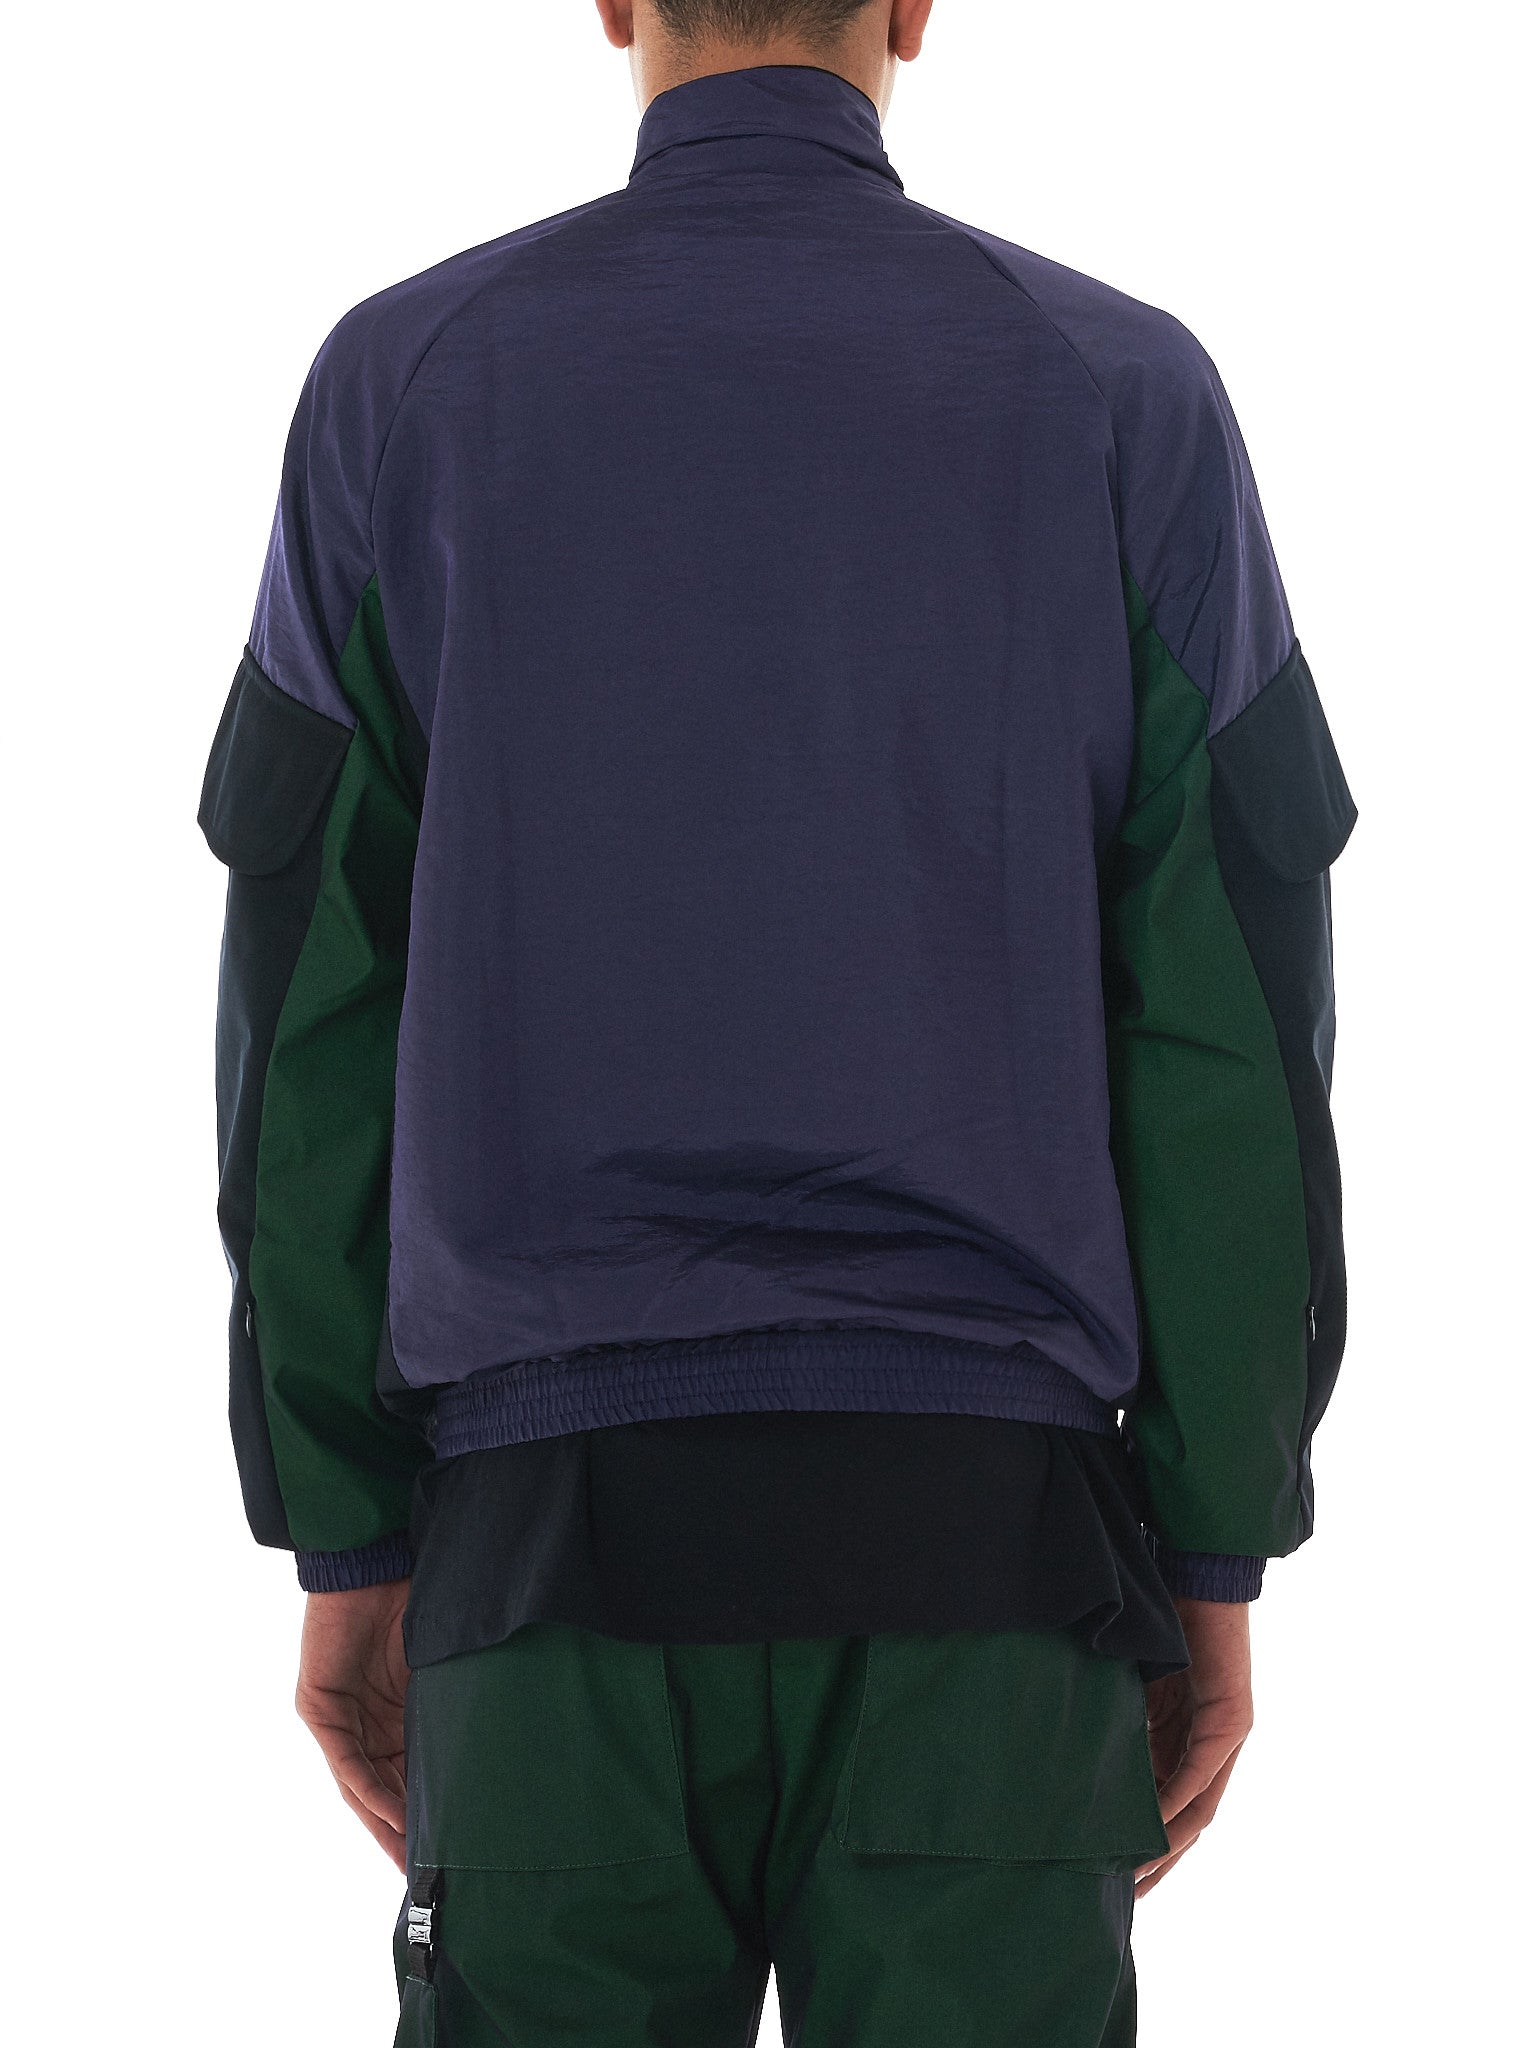 Cottweiler - Hlorenzo Back View